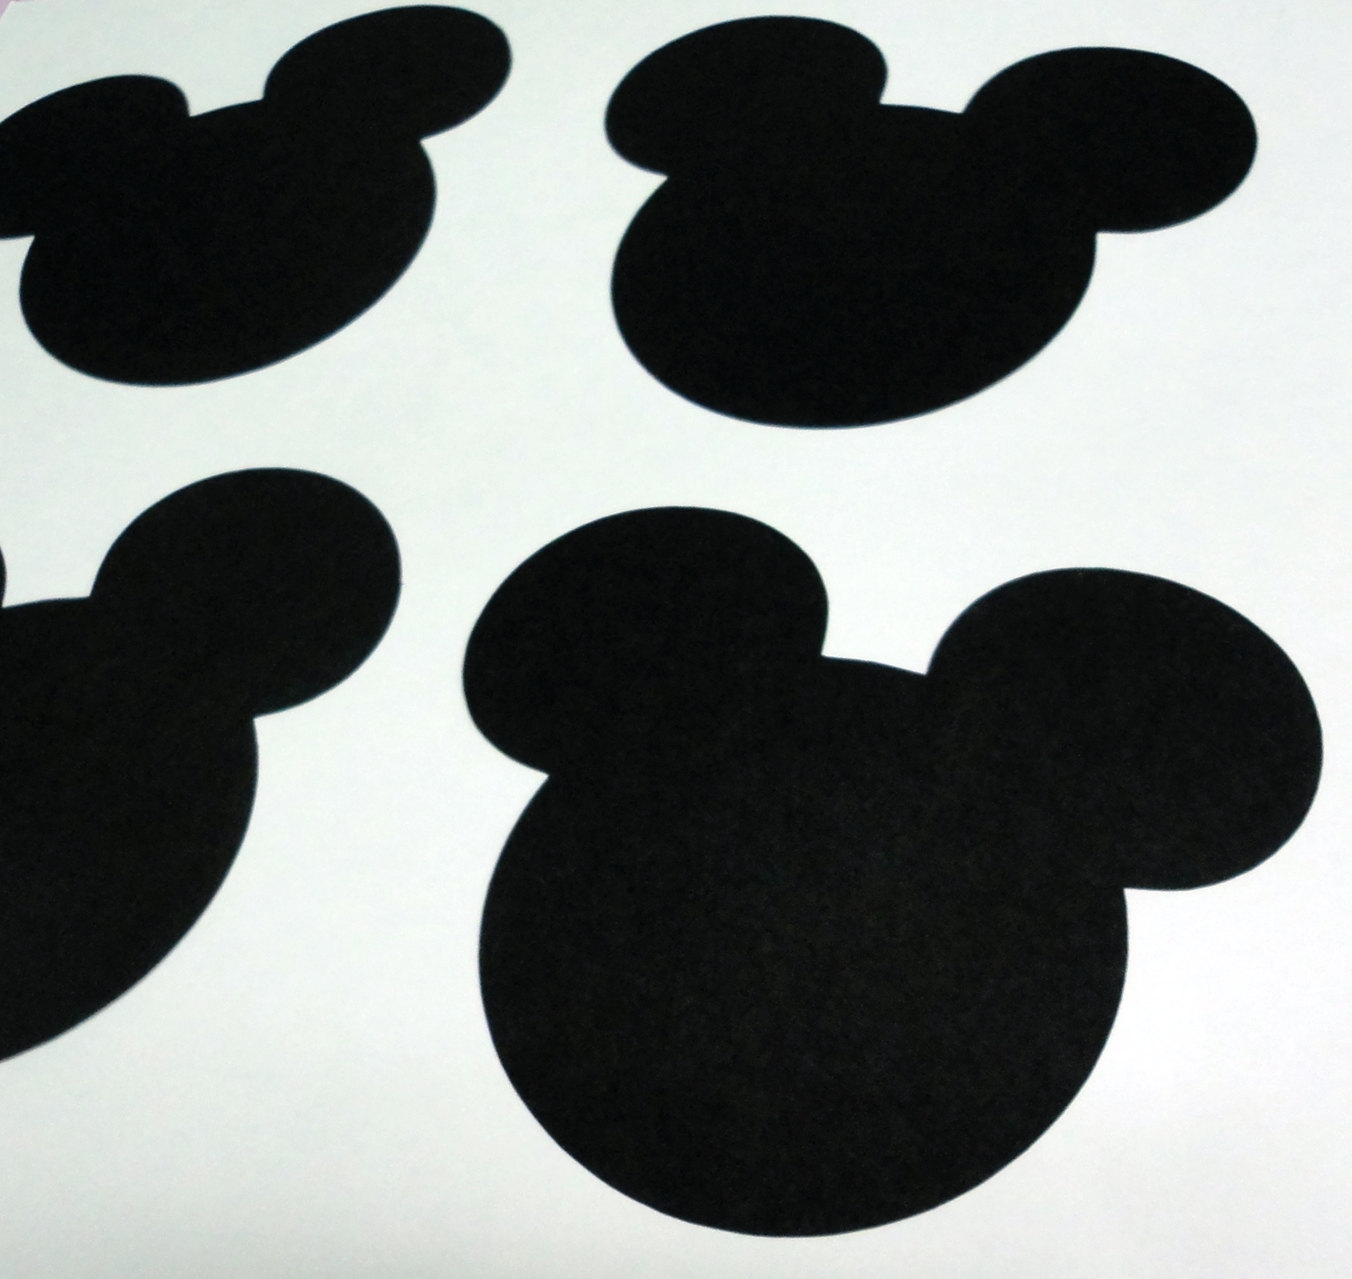 Mickey Mouse Head 741 Hd Wallpapers In Cartoons - Imagesci ...